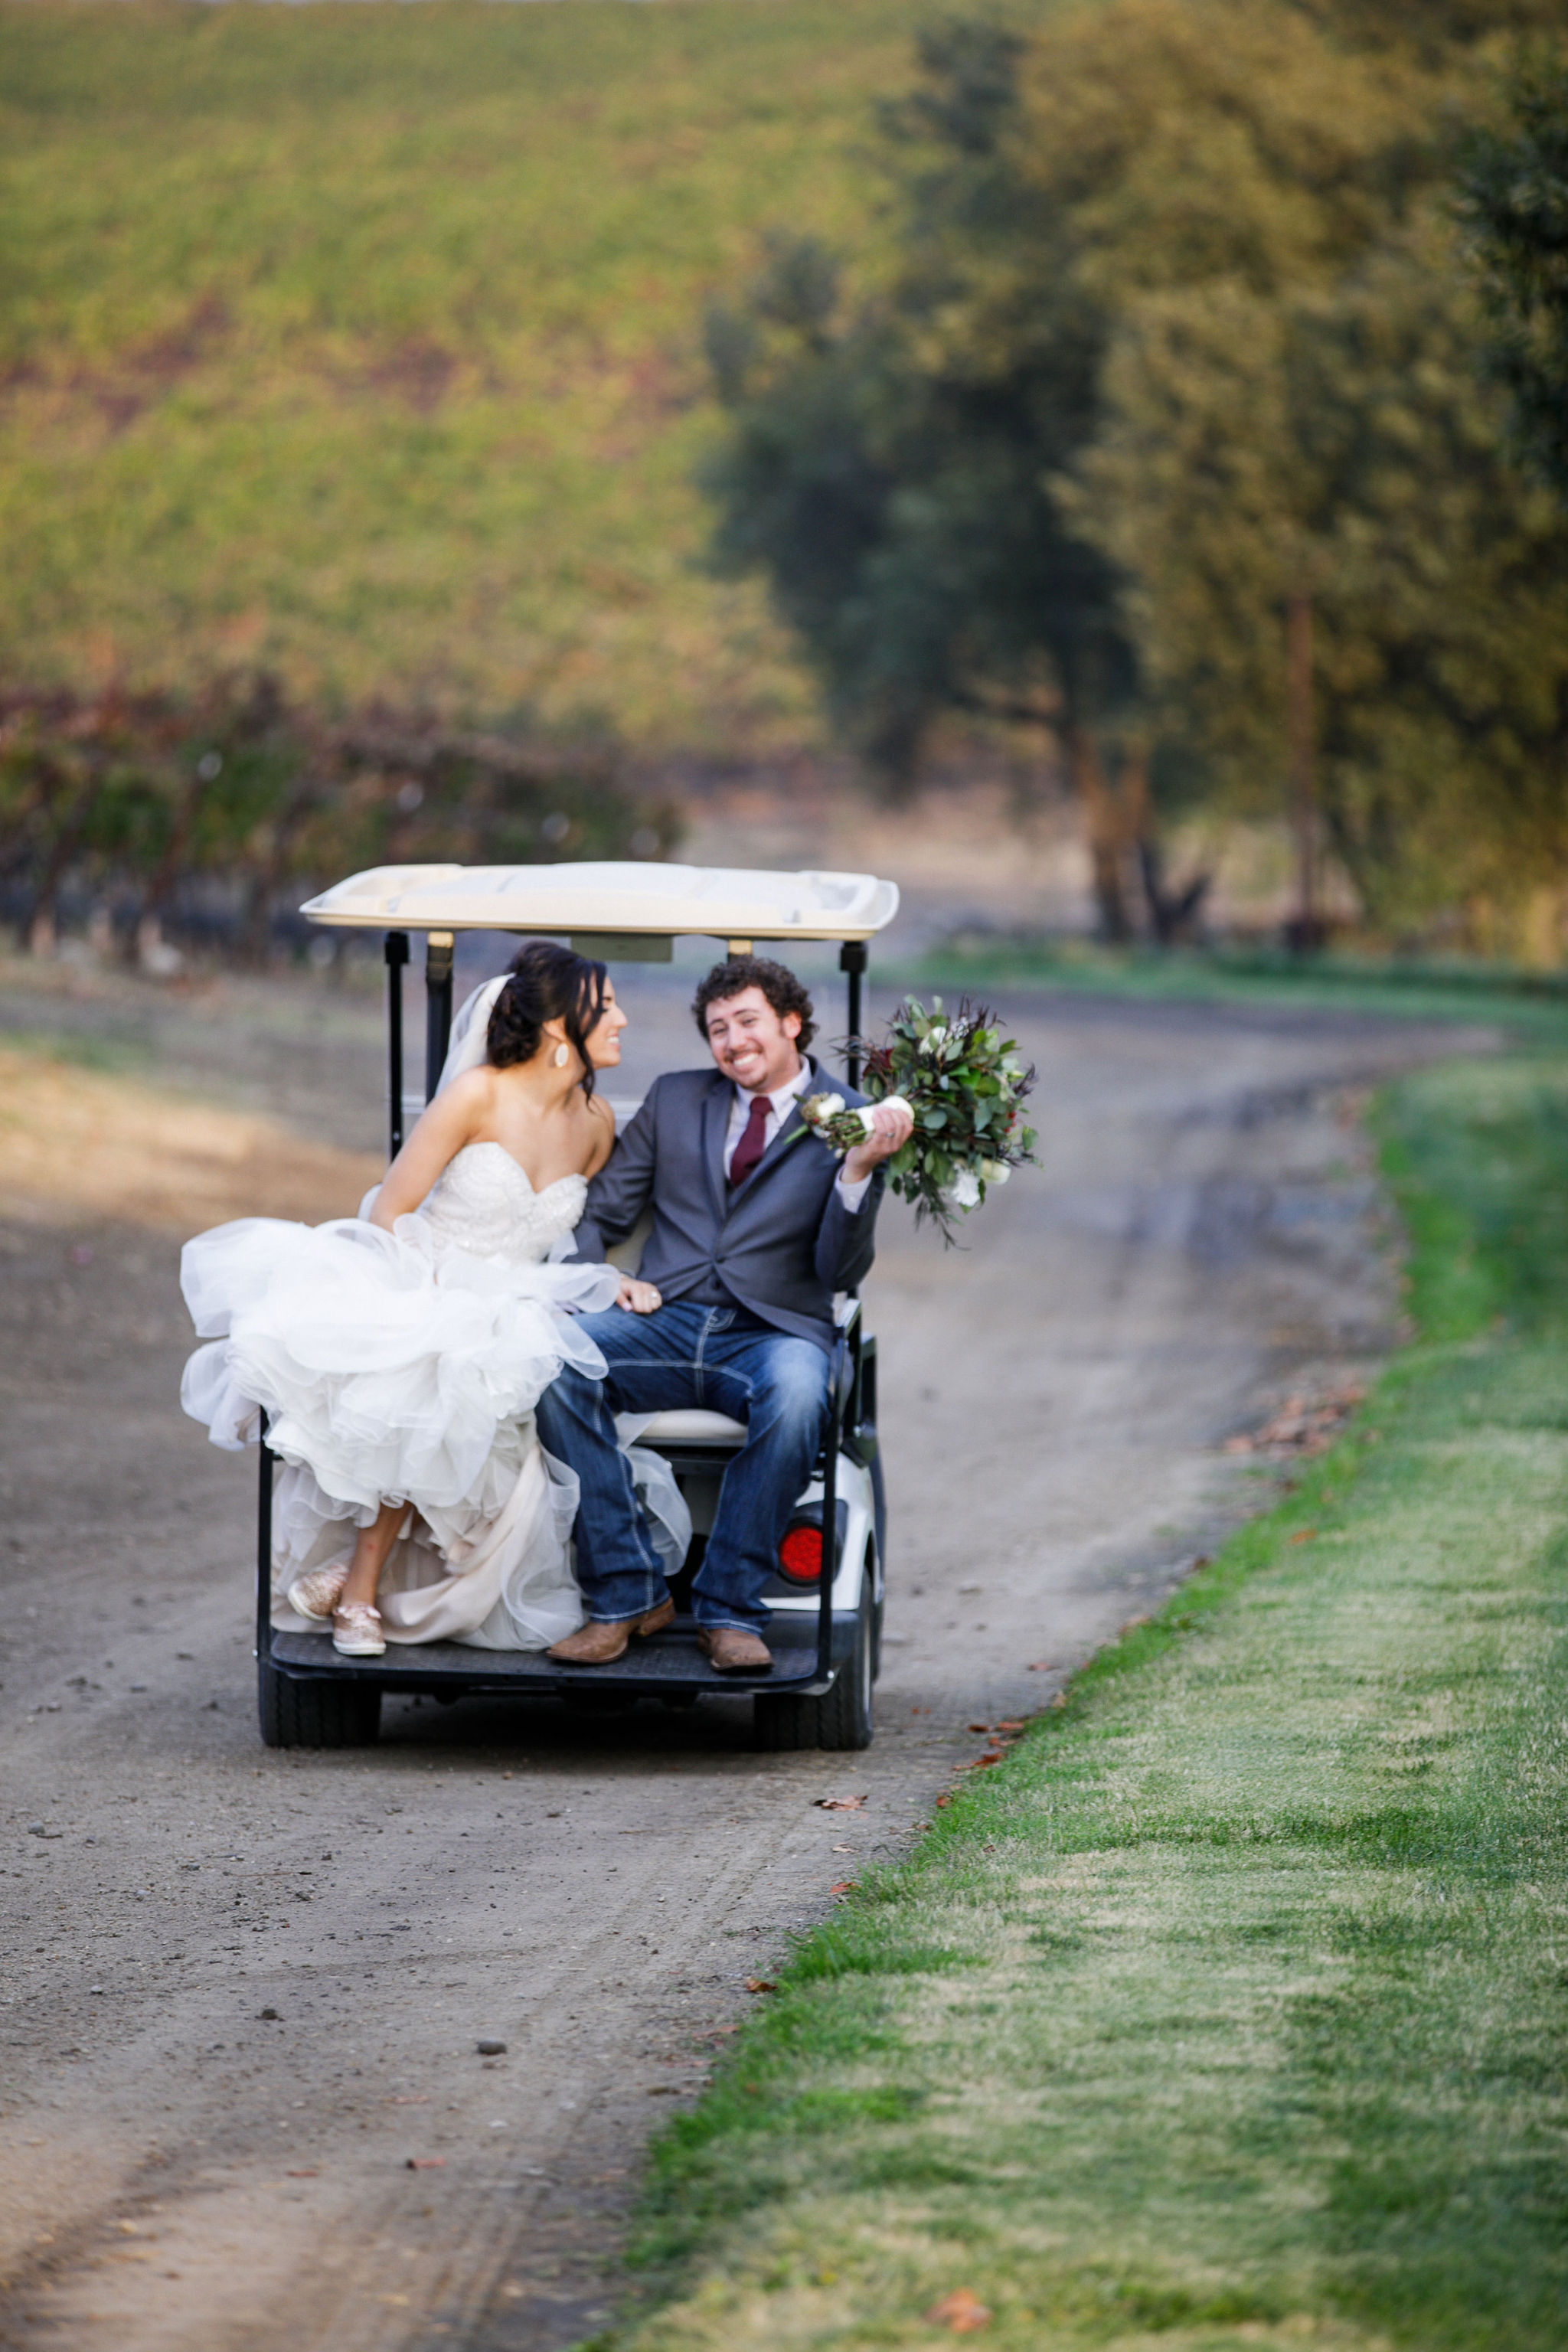 www.santabarbarawedding.com | Kiel Rucker | Greengate Ranch | Kramer Events | Bianca's Bridal | De La Fleur Flowers | Bride and Groom Ride Away on Golf Cart